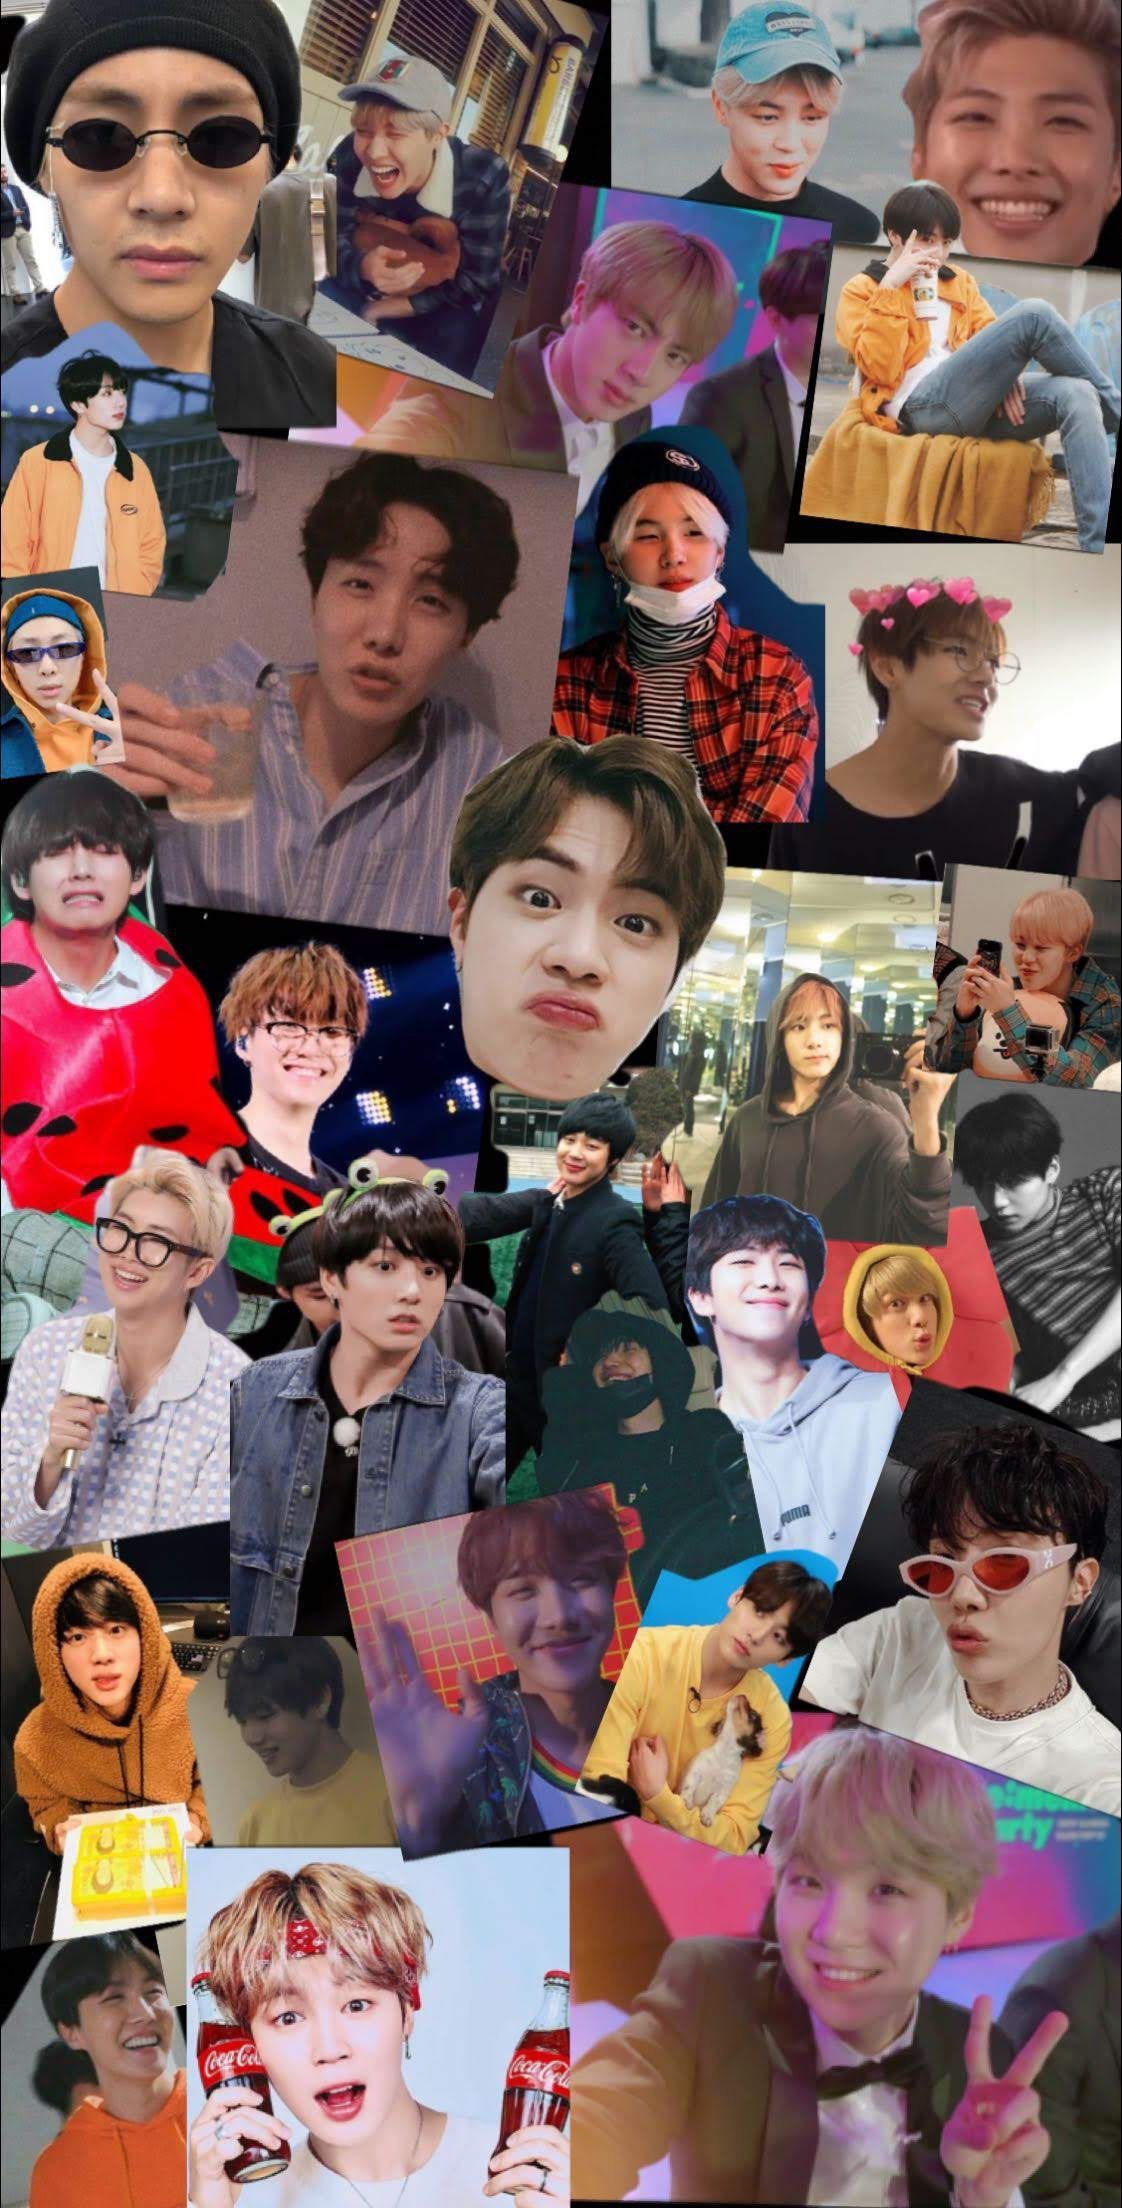 Bts Wallpaper Cute Funny Army Anyone Who Needs A Wallpaper For Bts Use This Chicos Bts Memes Divertidos Fondo De Pantalla Bts Bts cute and funny wallpapers